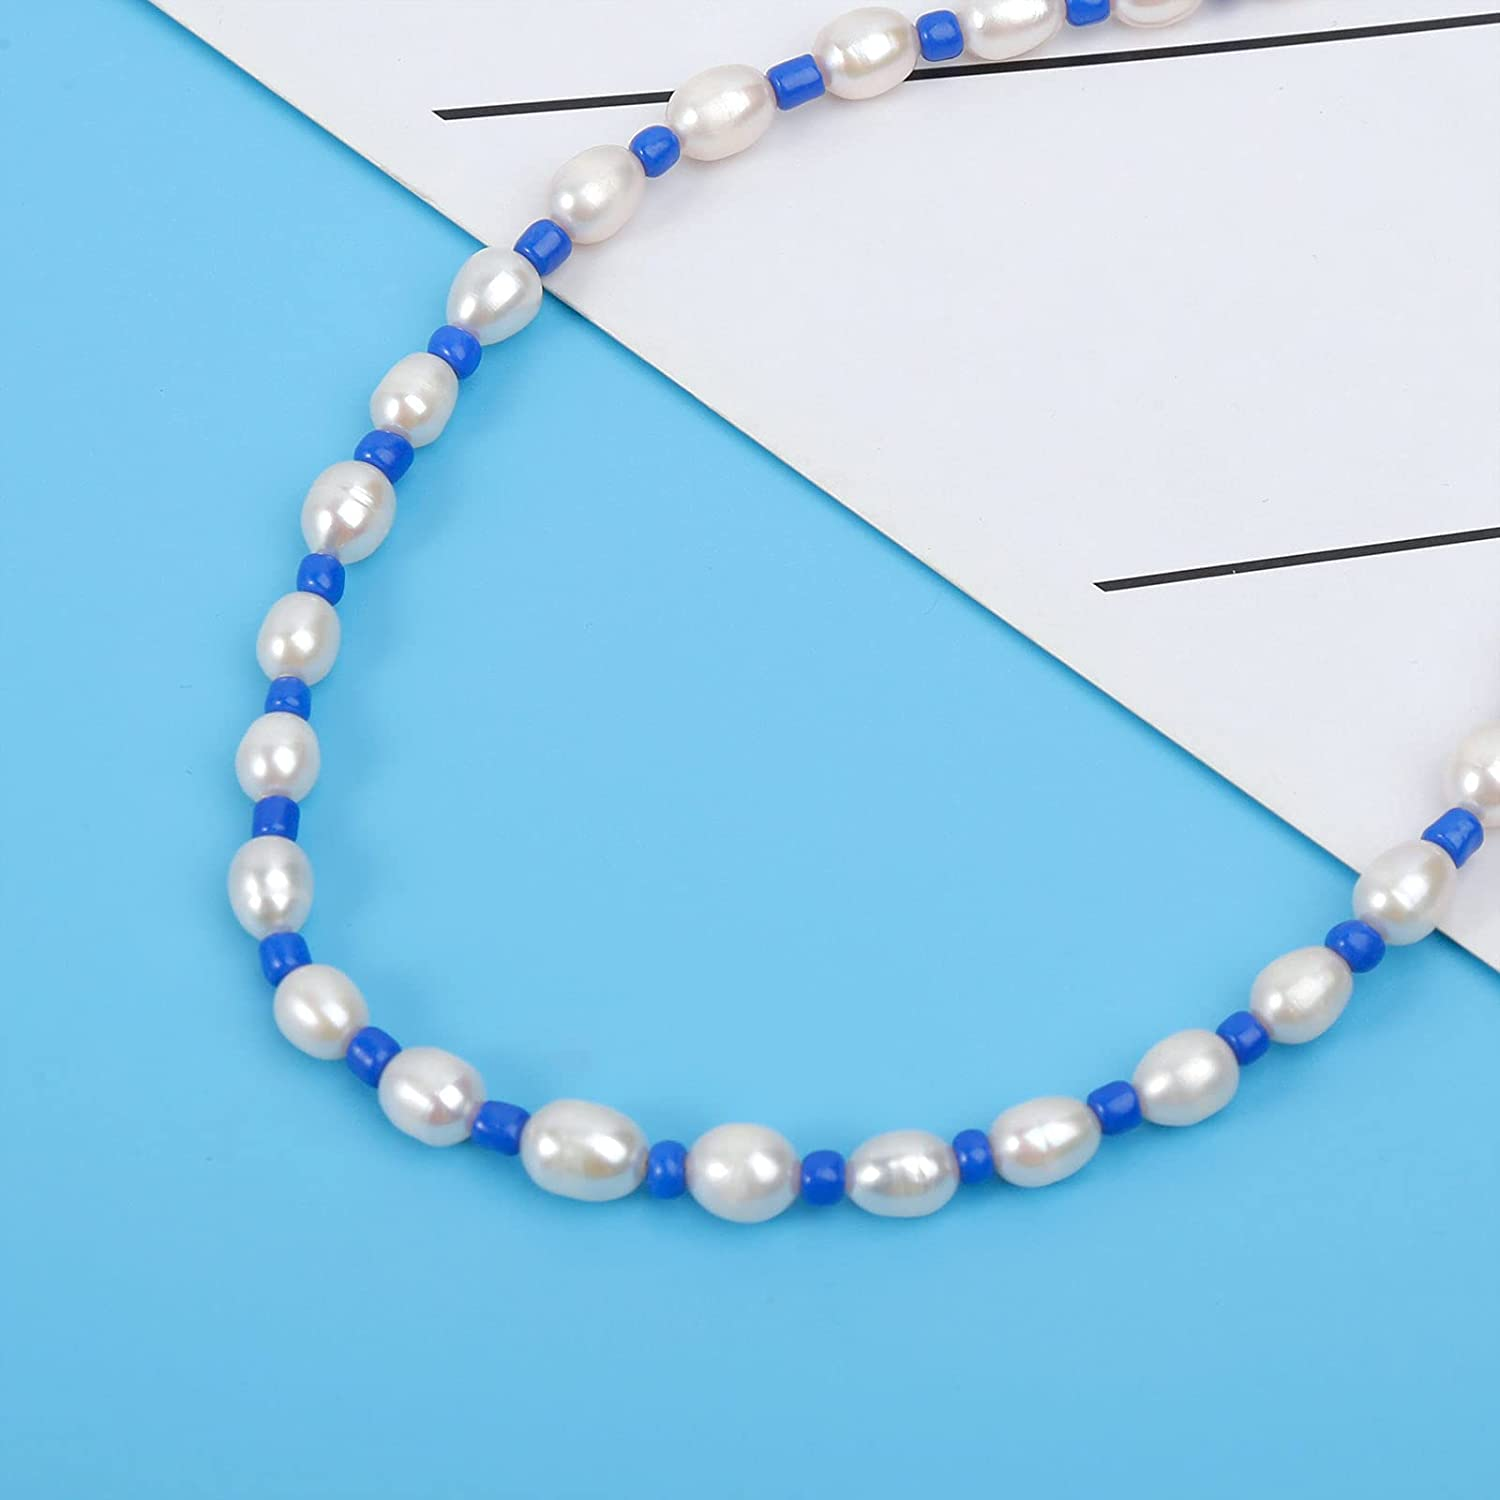 Wgoud Natural Freshwater Pearl Choker Necklace for Women, Trendy 14K Gold Plated Handmade Pearl Necklaces Jewelry Gift